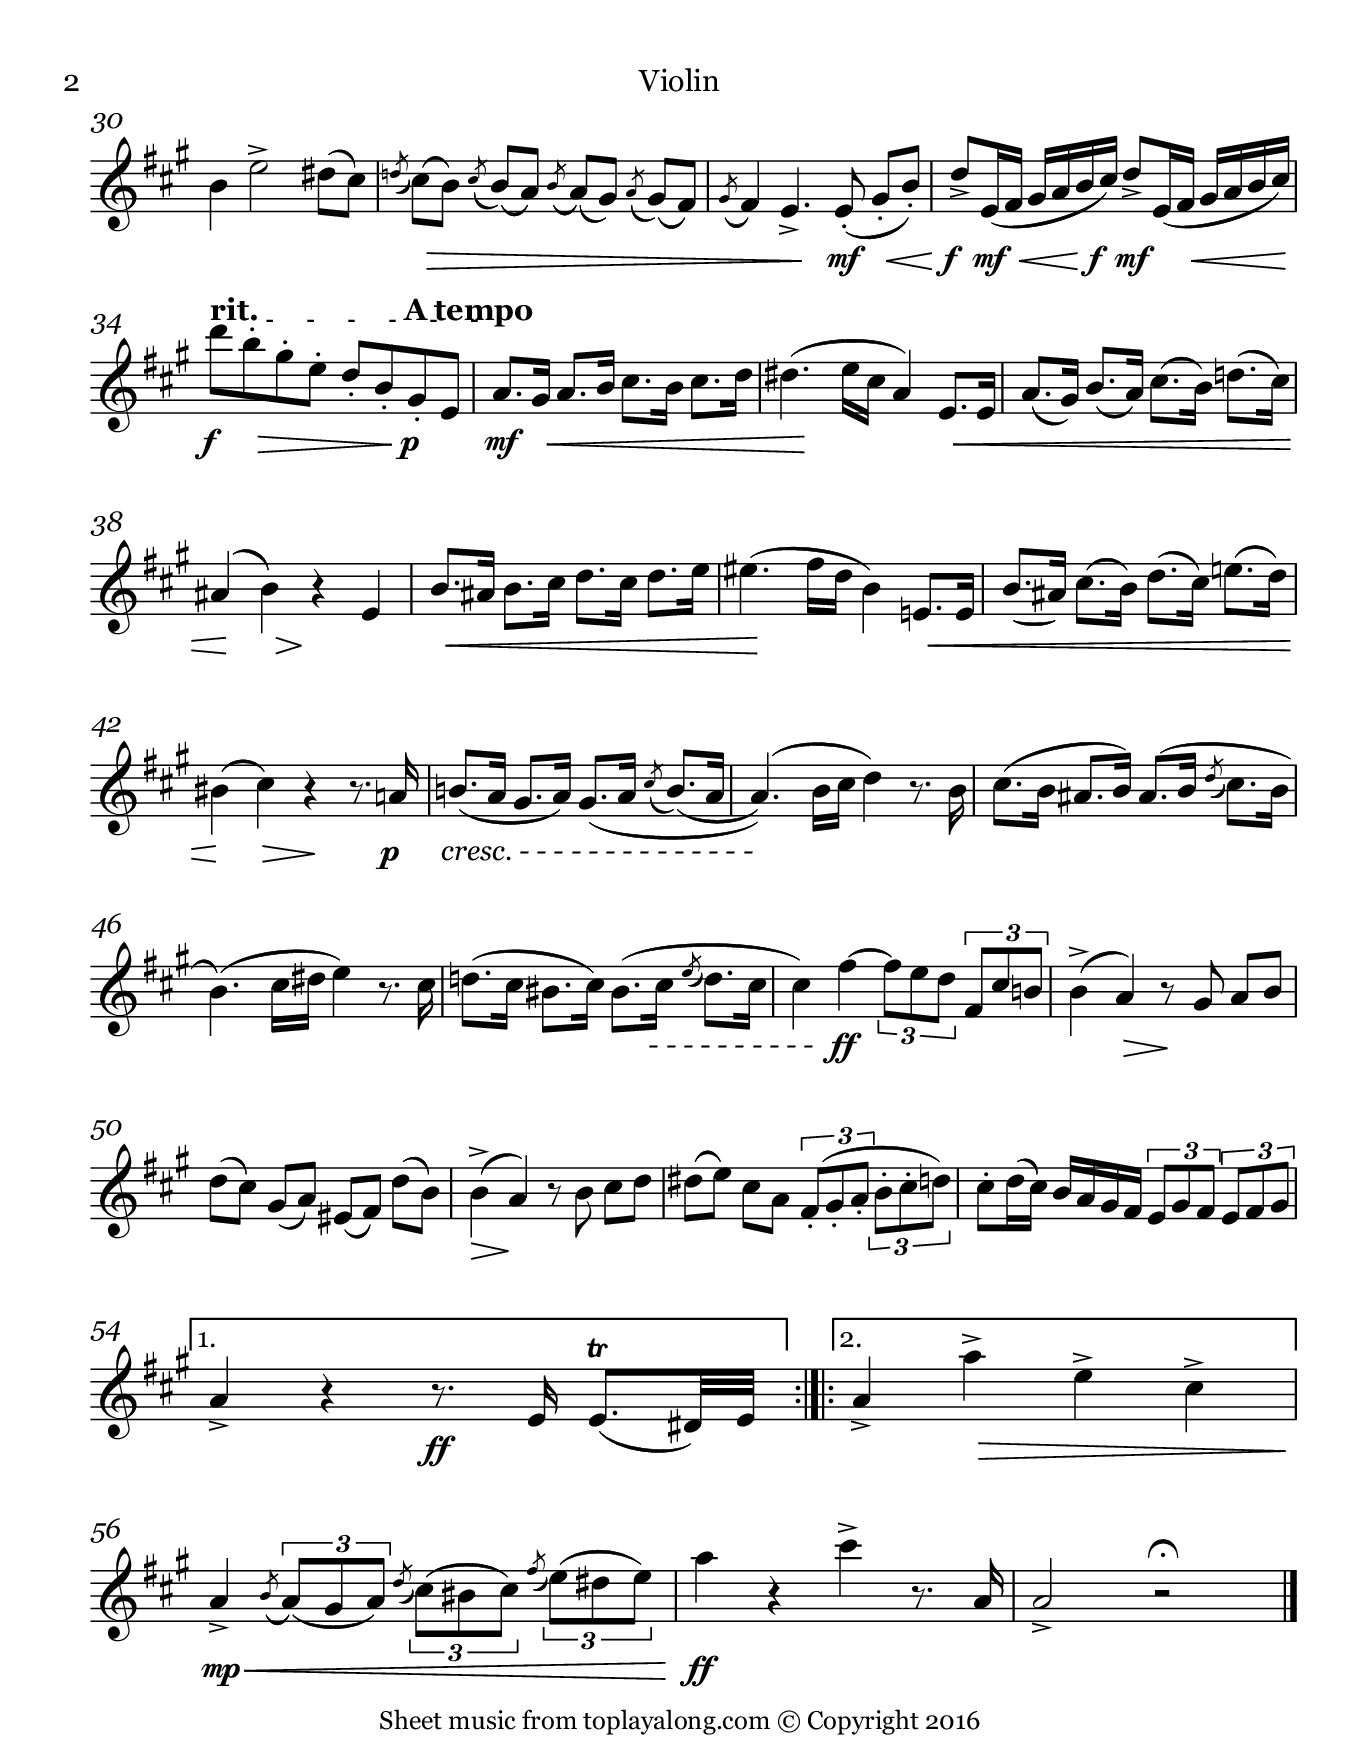 National Anthem of Brazil. Sheet music for Violin, page 2.